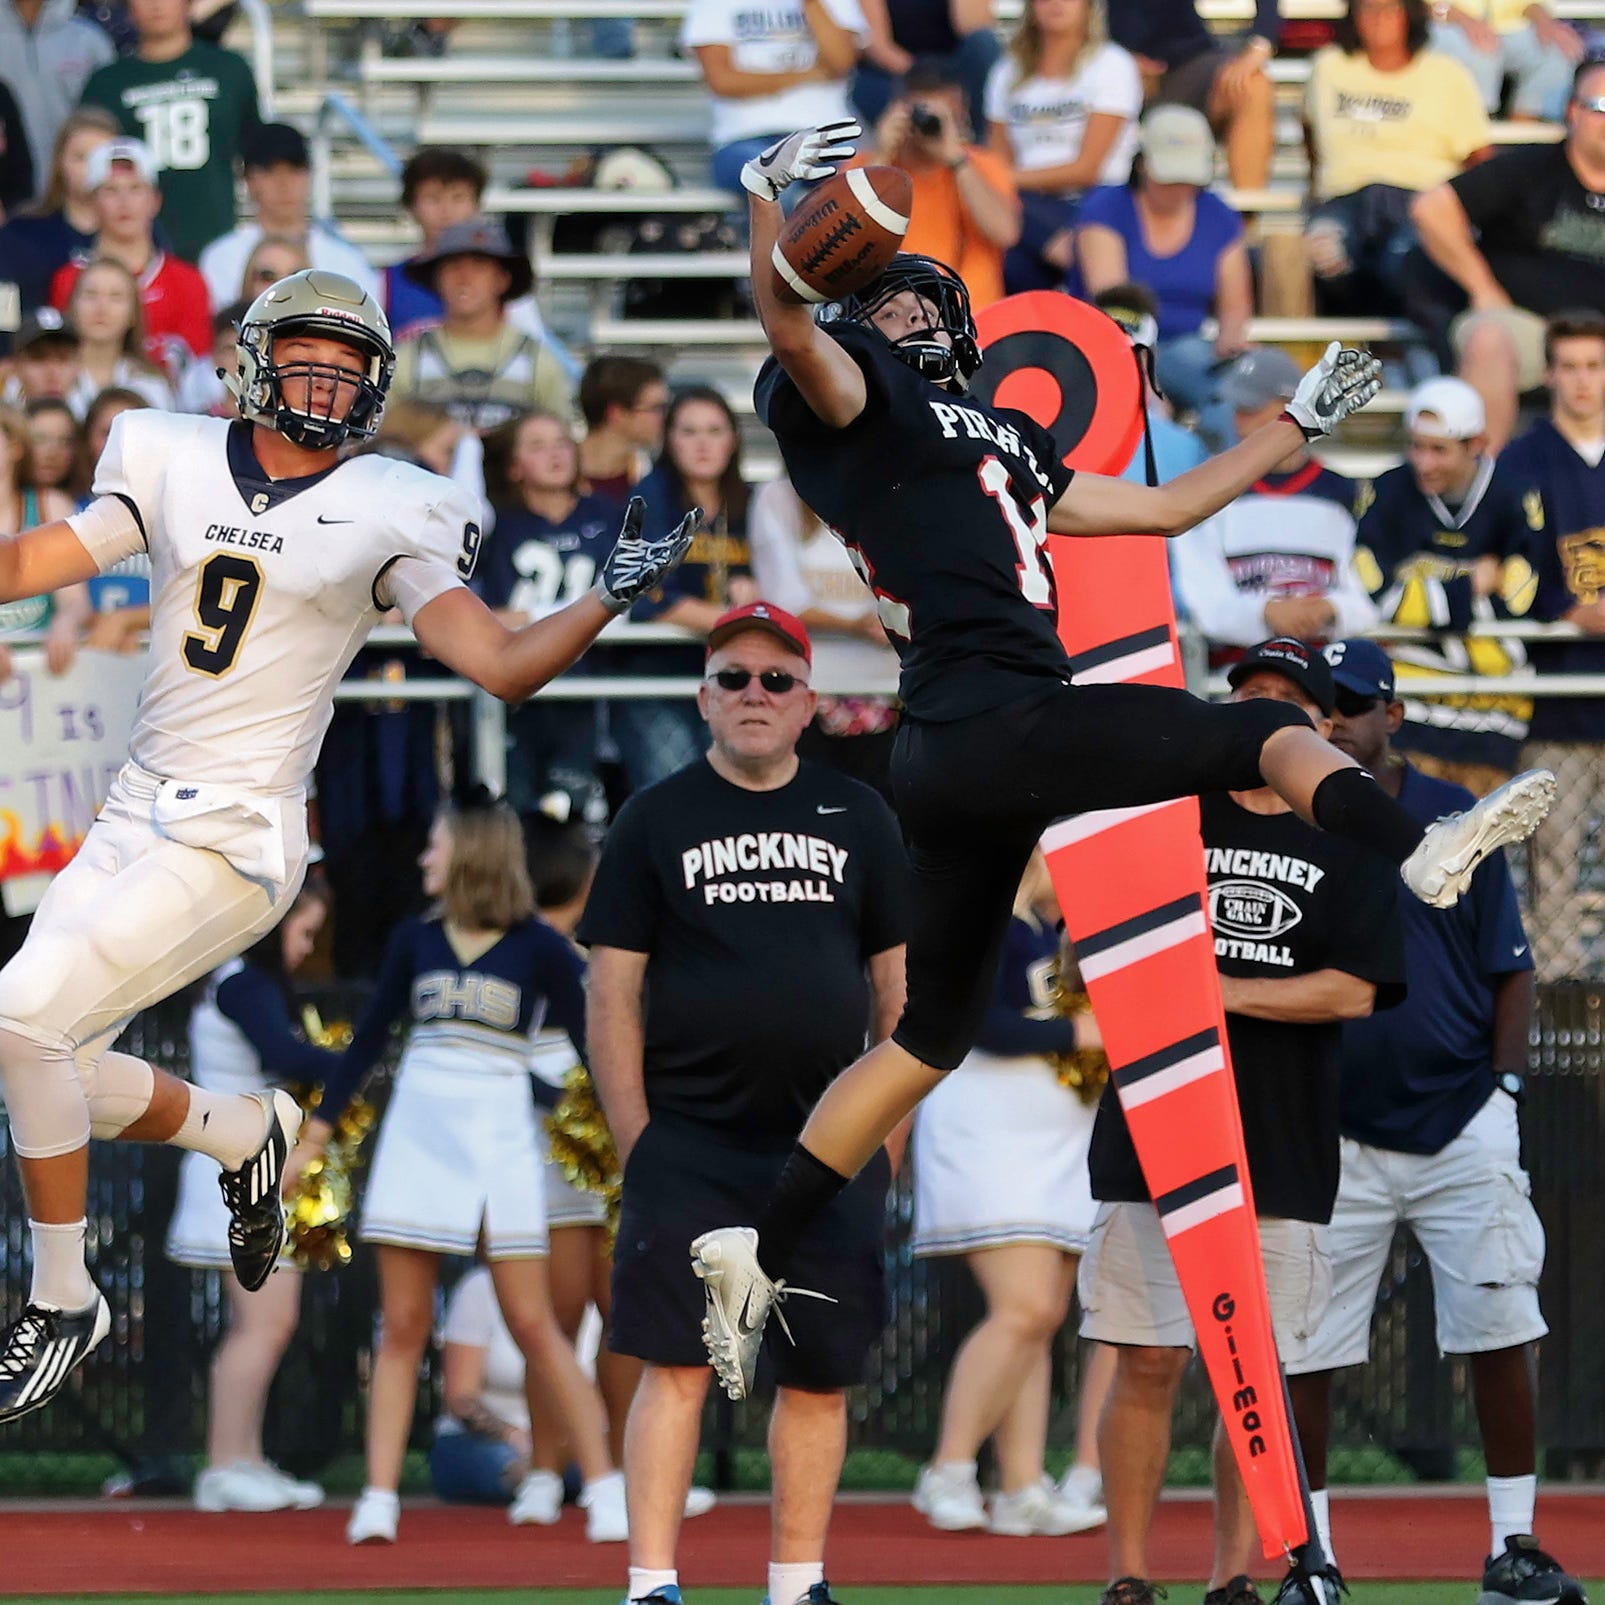 Backup quarterbacks at Hartland, Pinckney contributing elsewhere